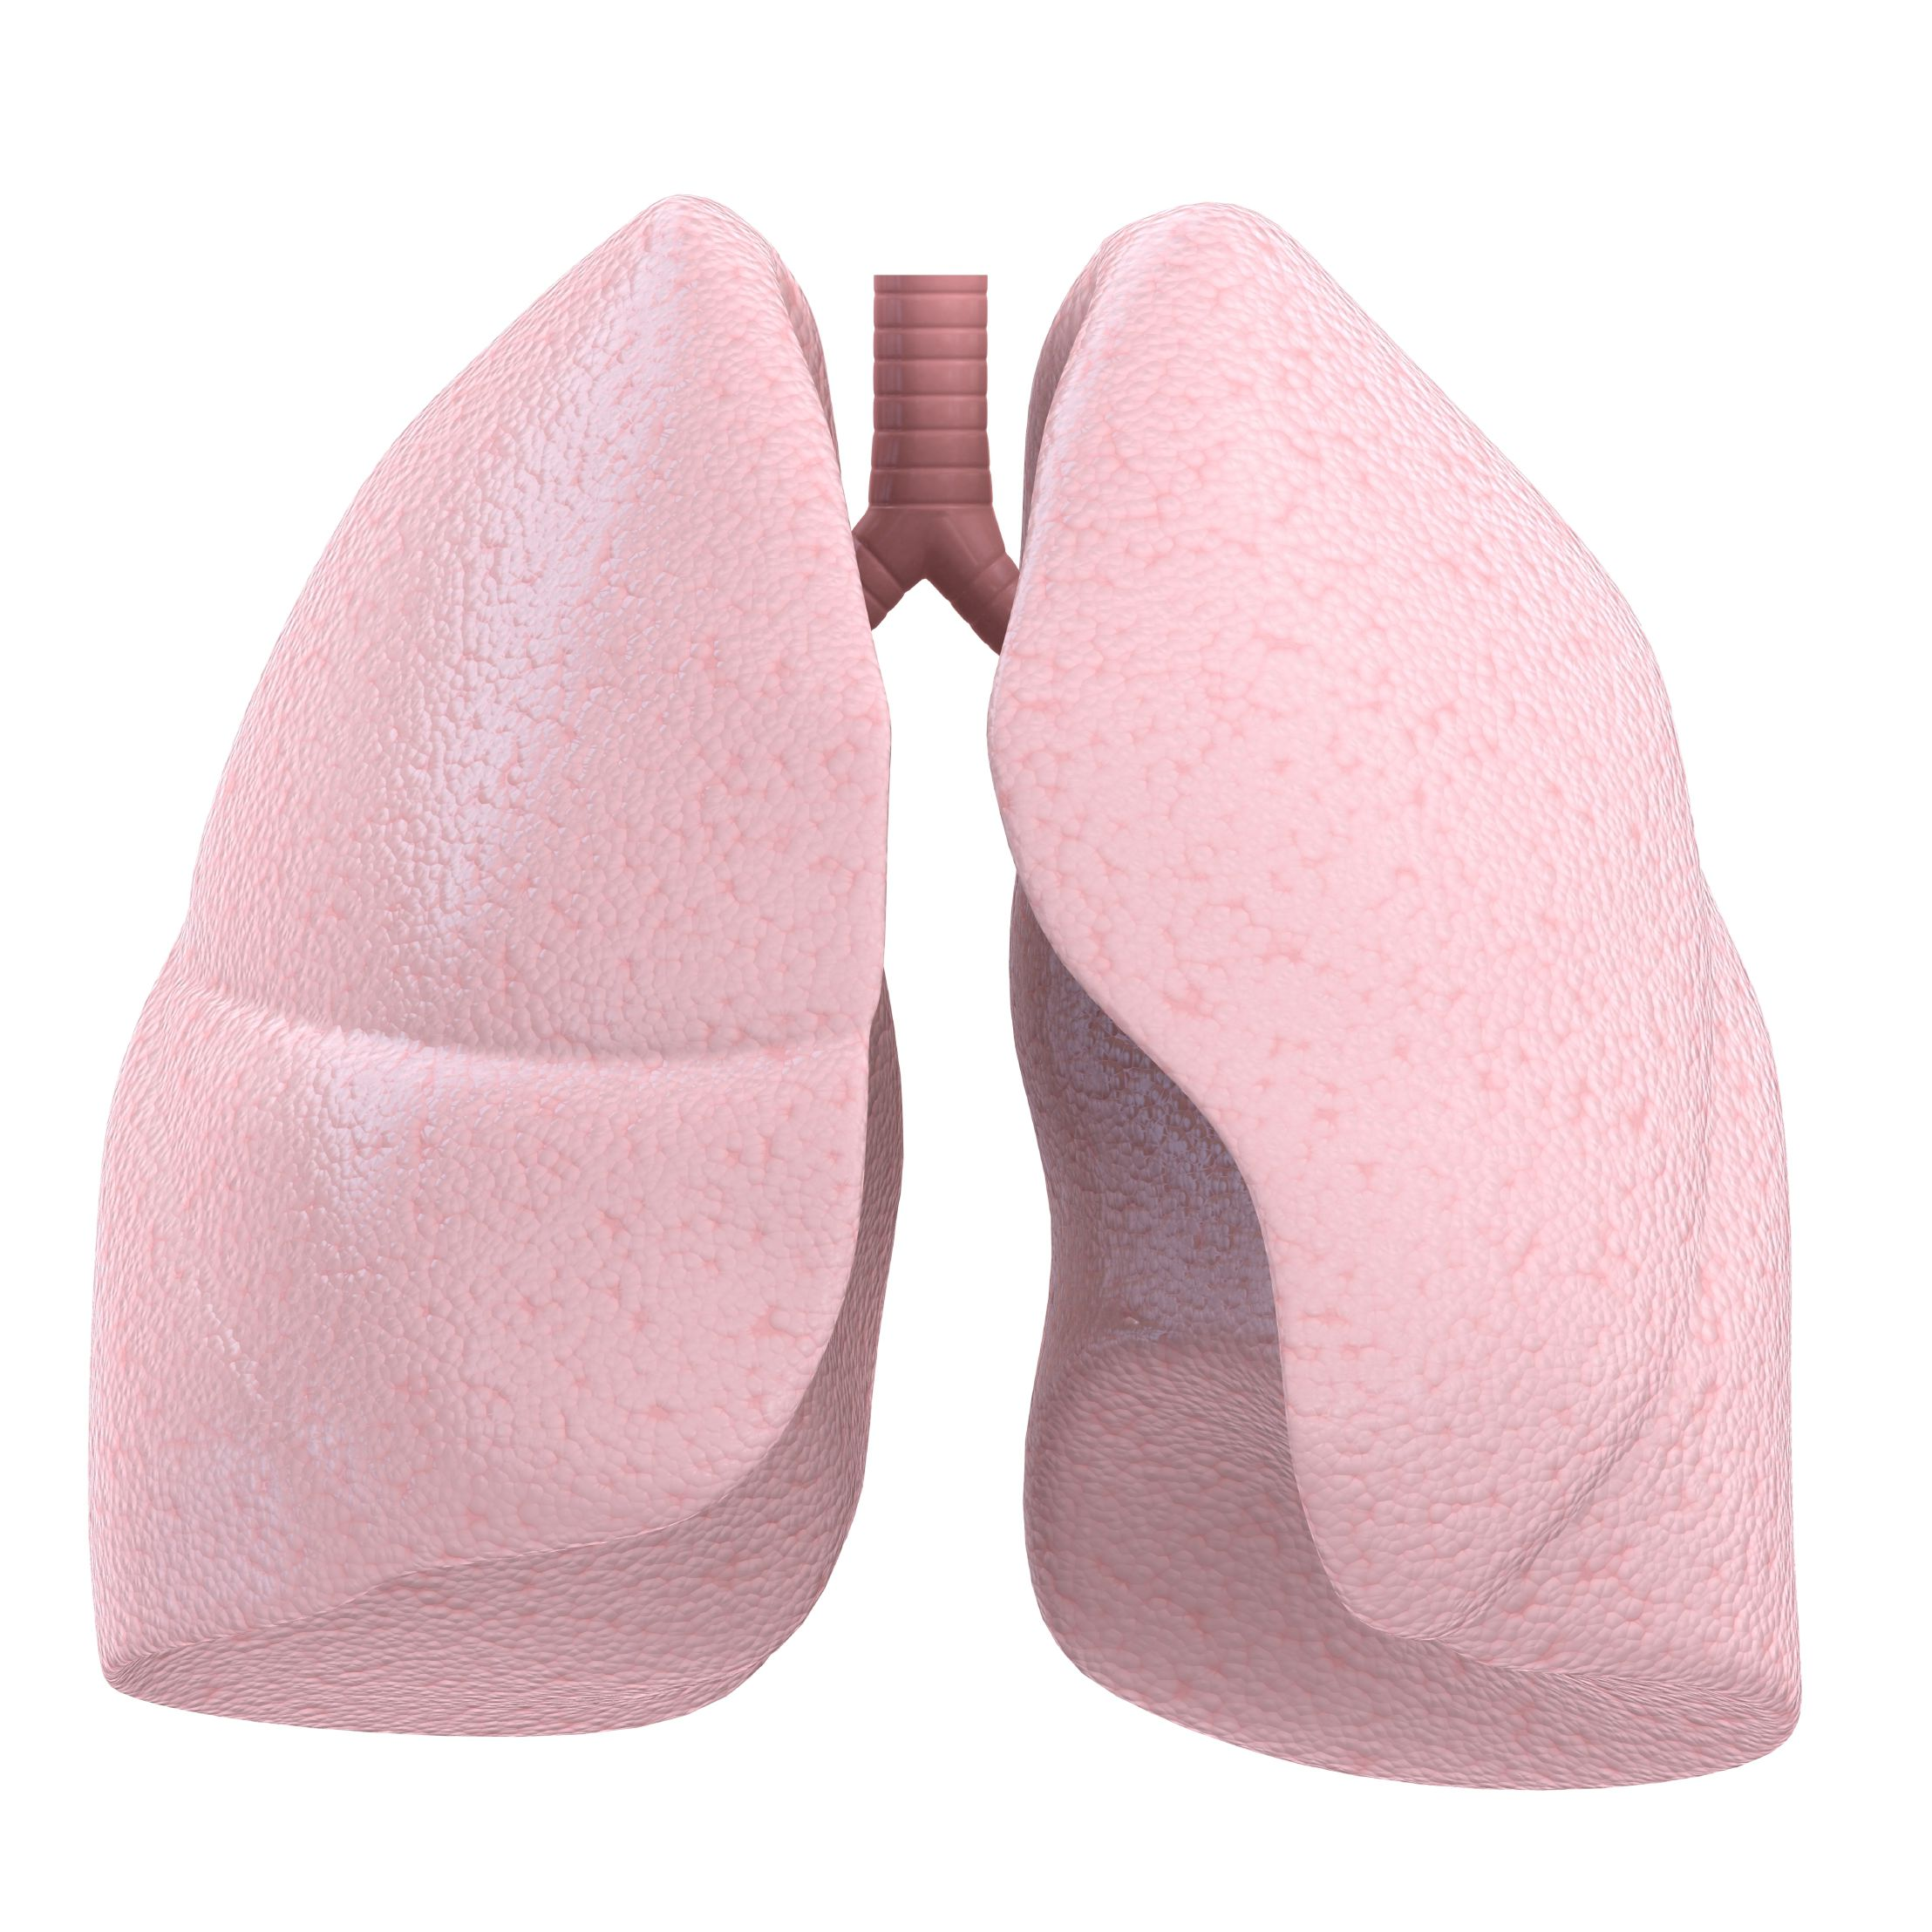 Hilum of the Lung: Definition, Anatomy, and Masses